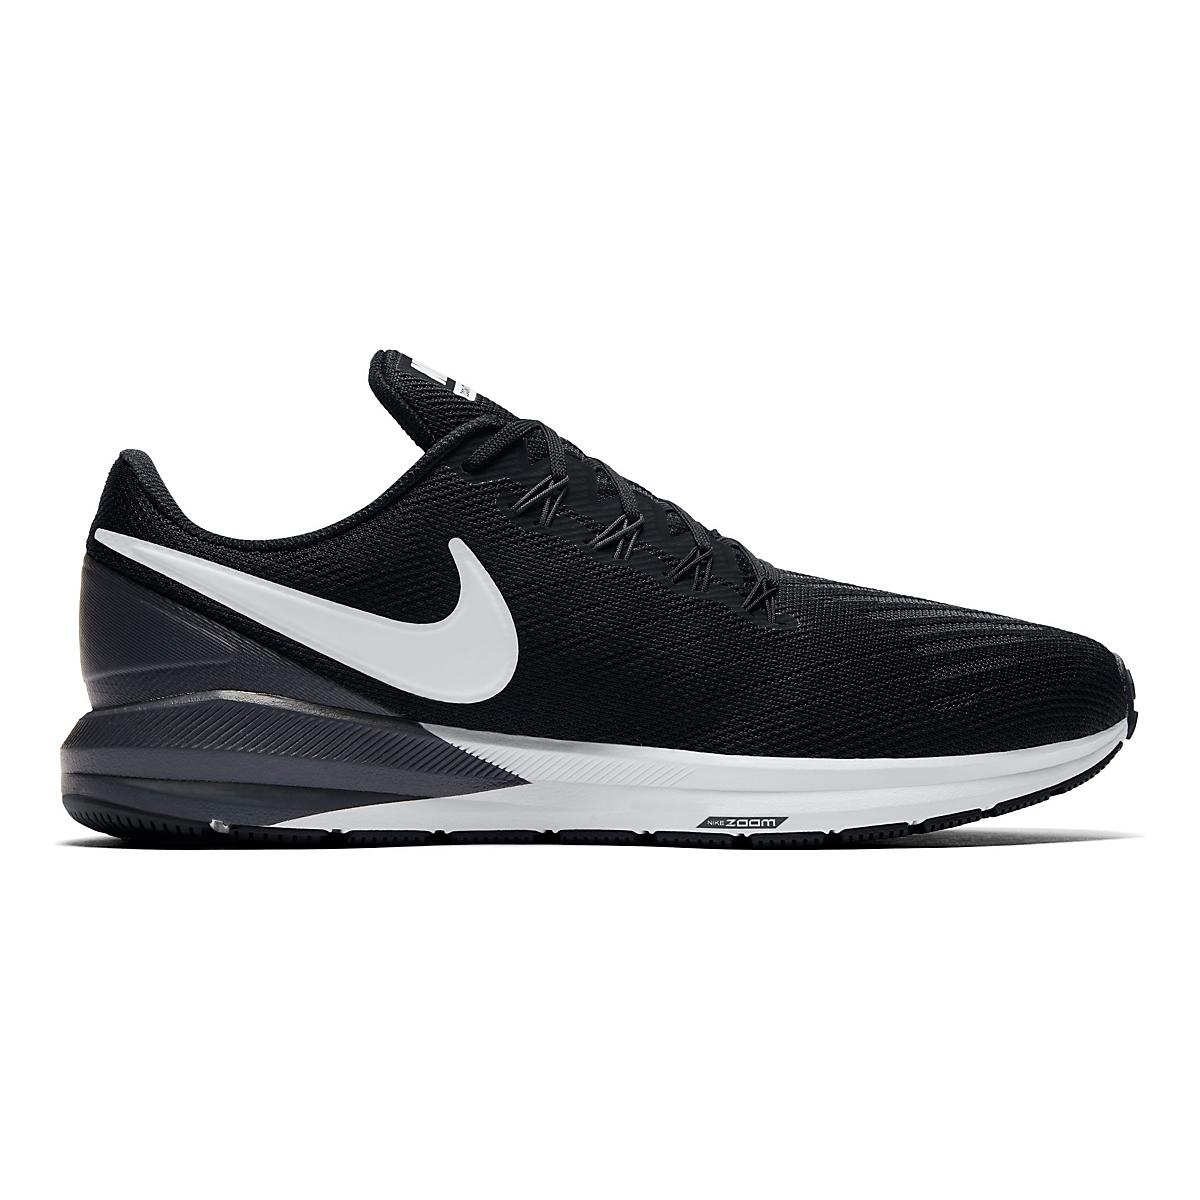 ac19f99890cc Mens Nike Air Zoom Structure 22 Running Shoe at Road Runner Sports